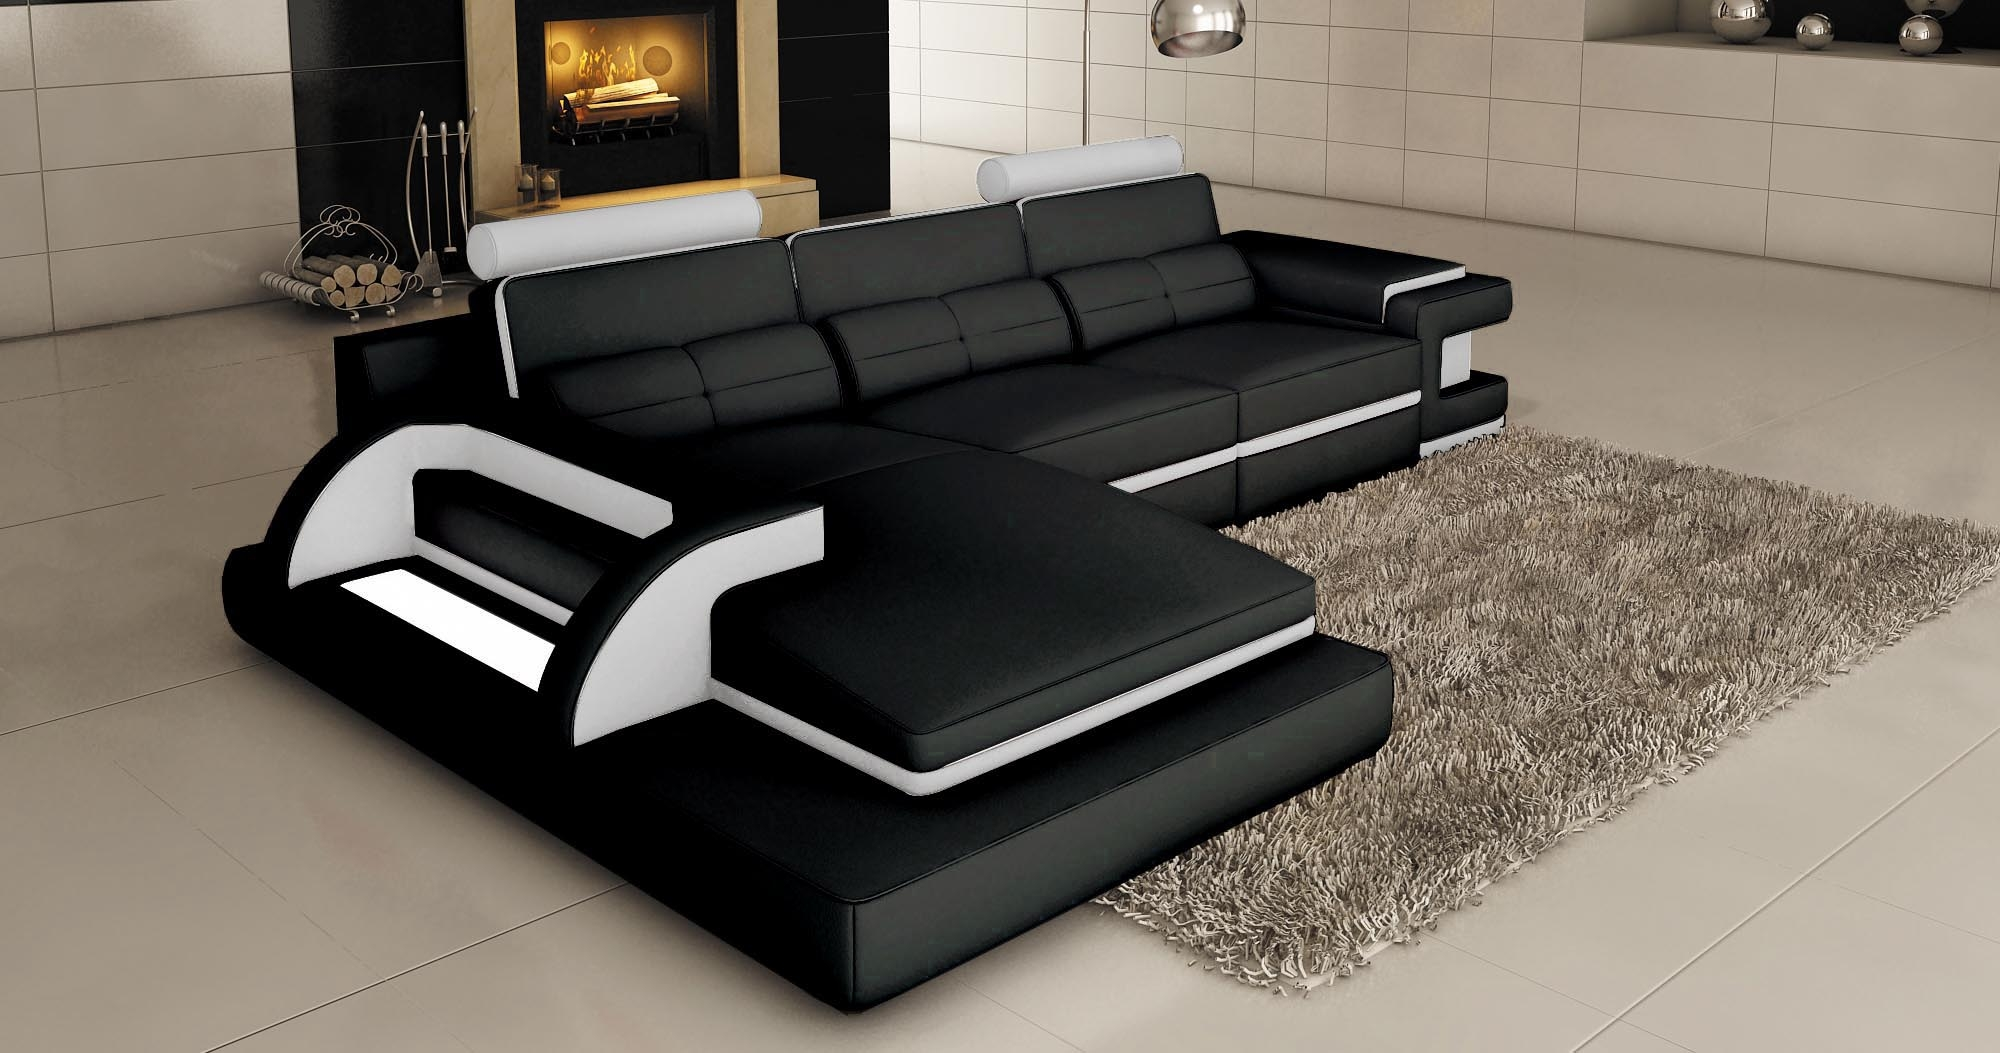 canap d angle cuir noir royal sofa id e de canap et meuble maison. Black Bedroom Furniture Sets. Home Design Ideas